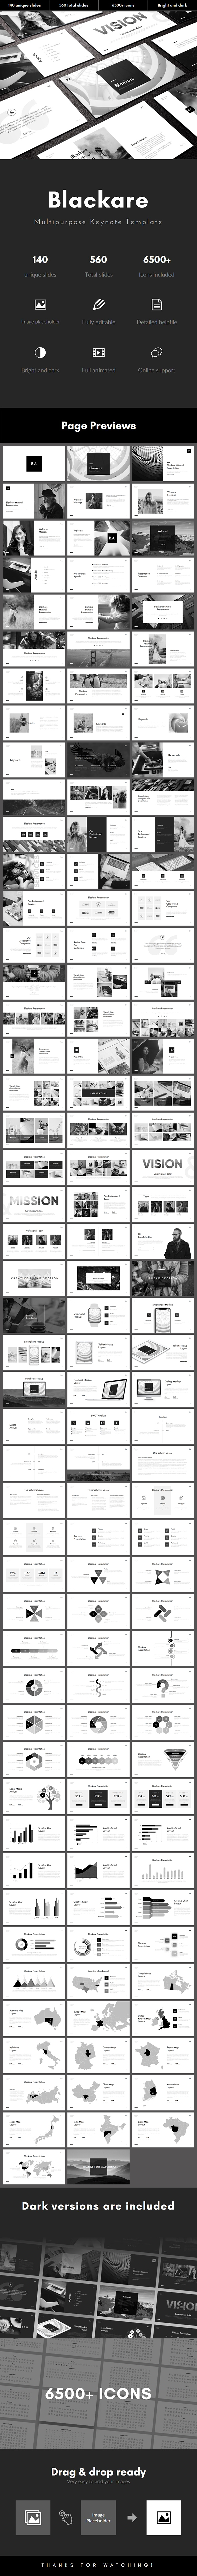 Blackare Multipurpose Keynote Template - Creative Keynote Templates